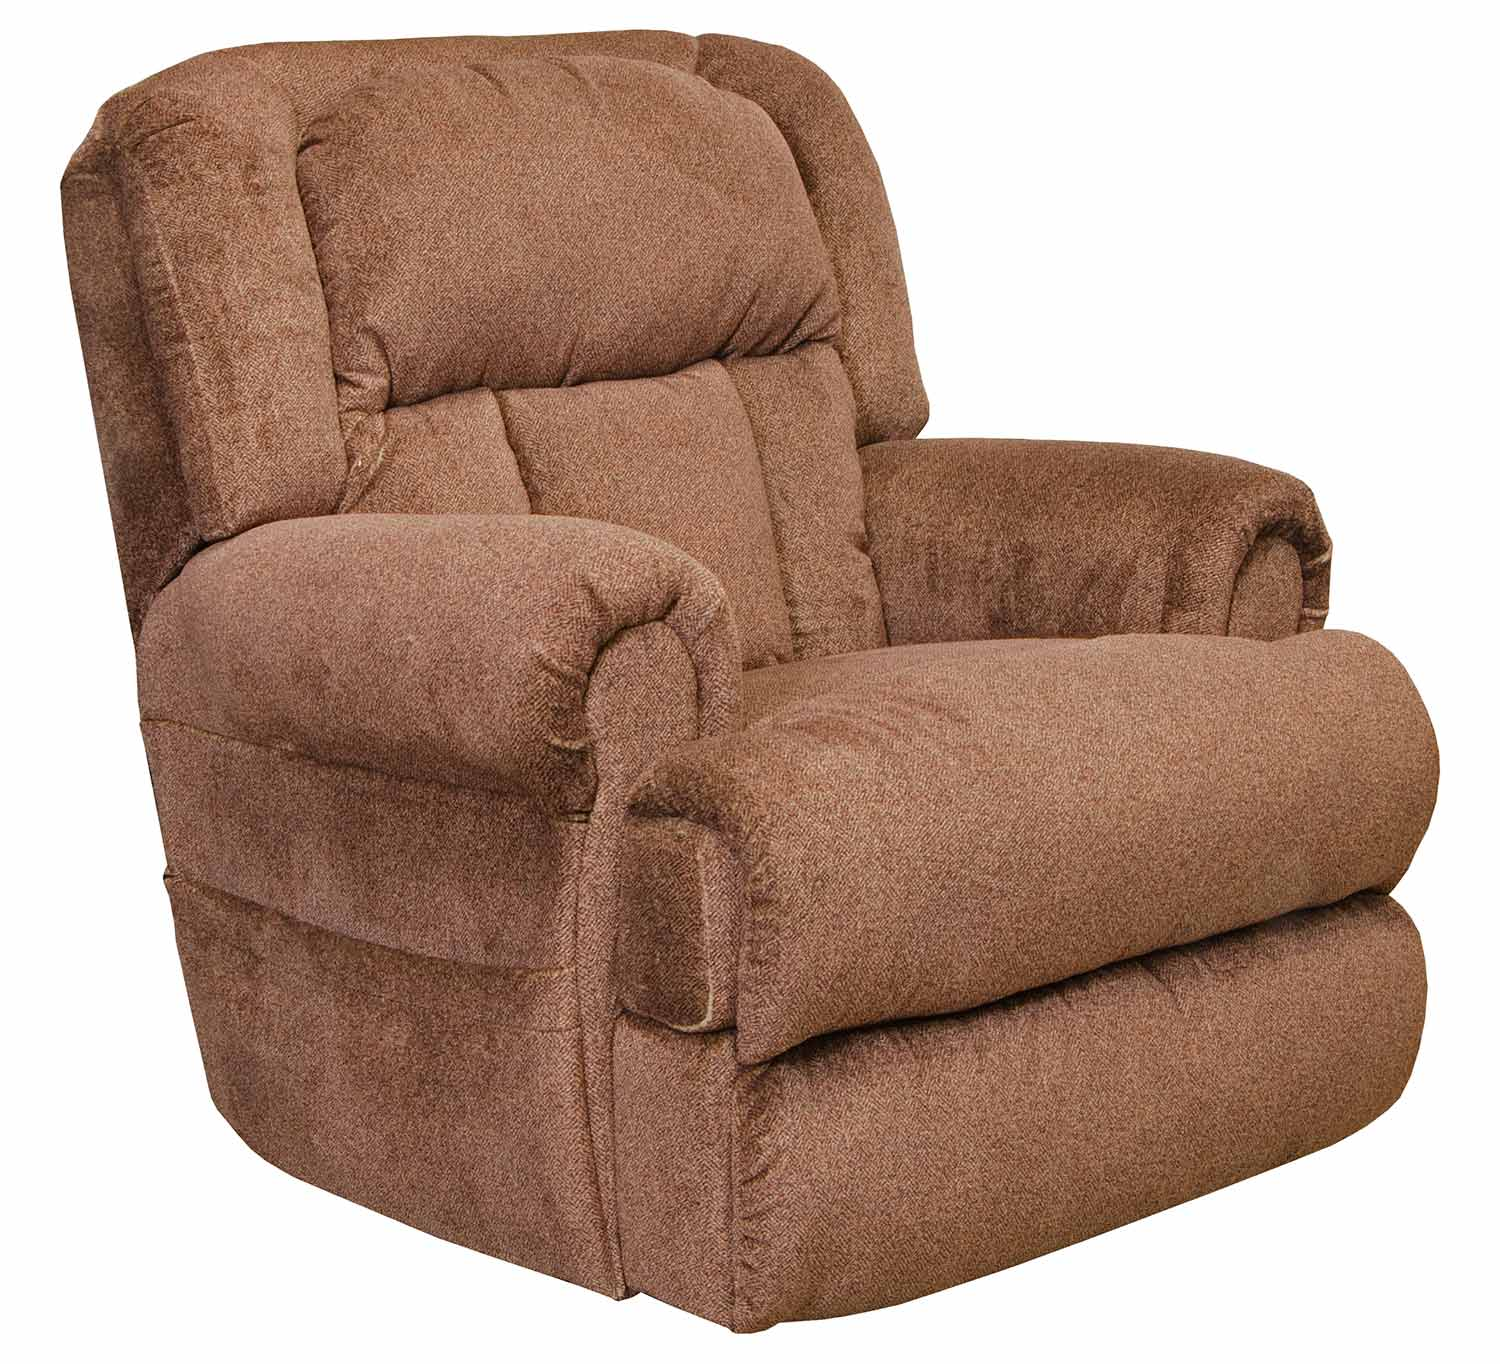 CatNapper Burns Power Lift Recliner Chair - Spice